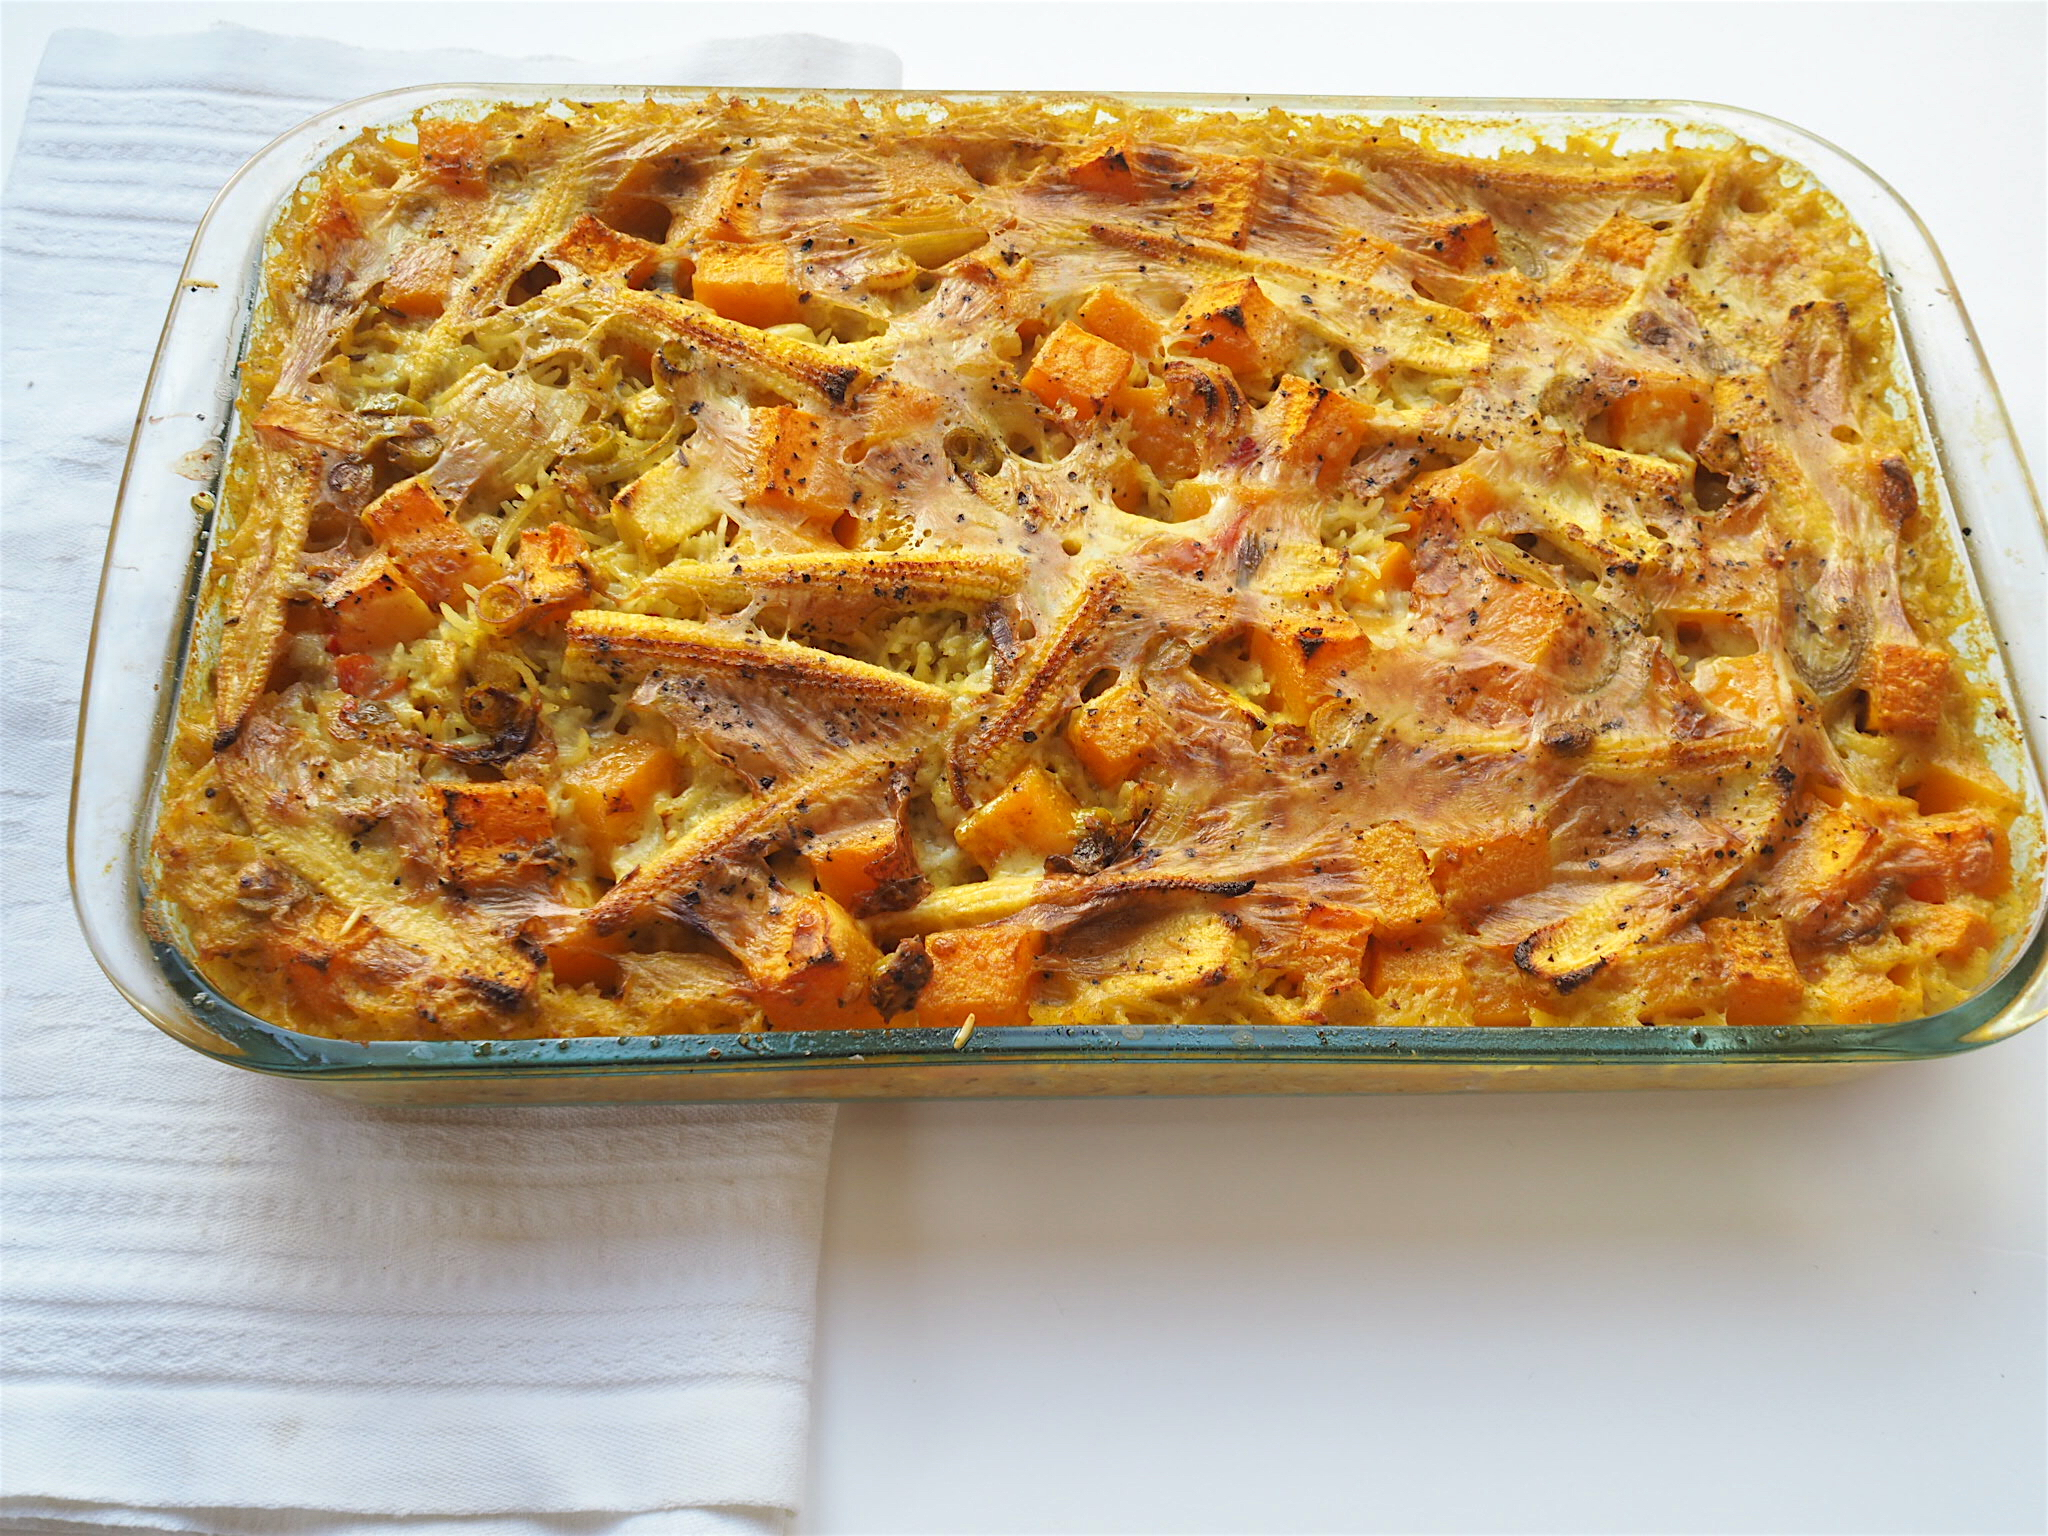 turmeric coconut rice bake.JPG